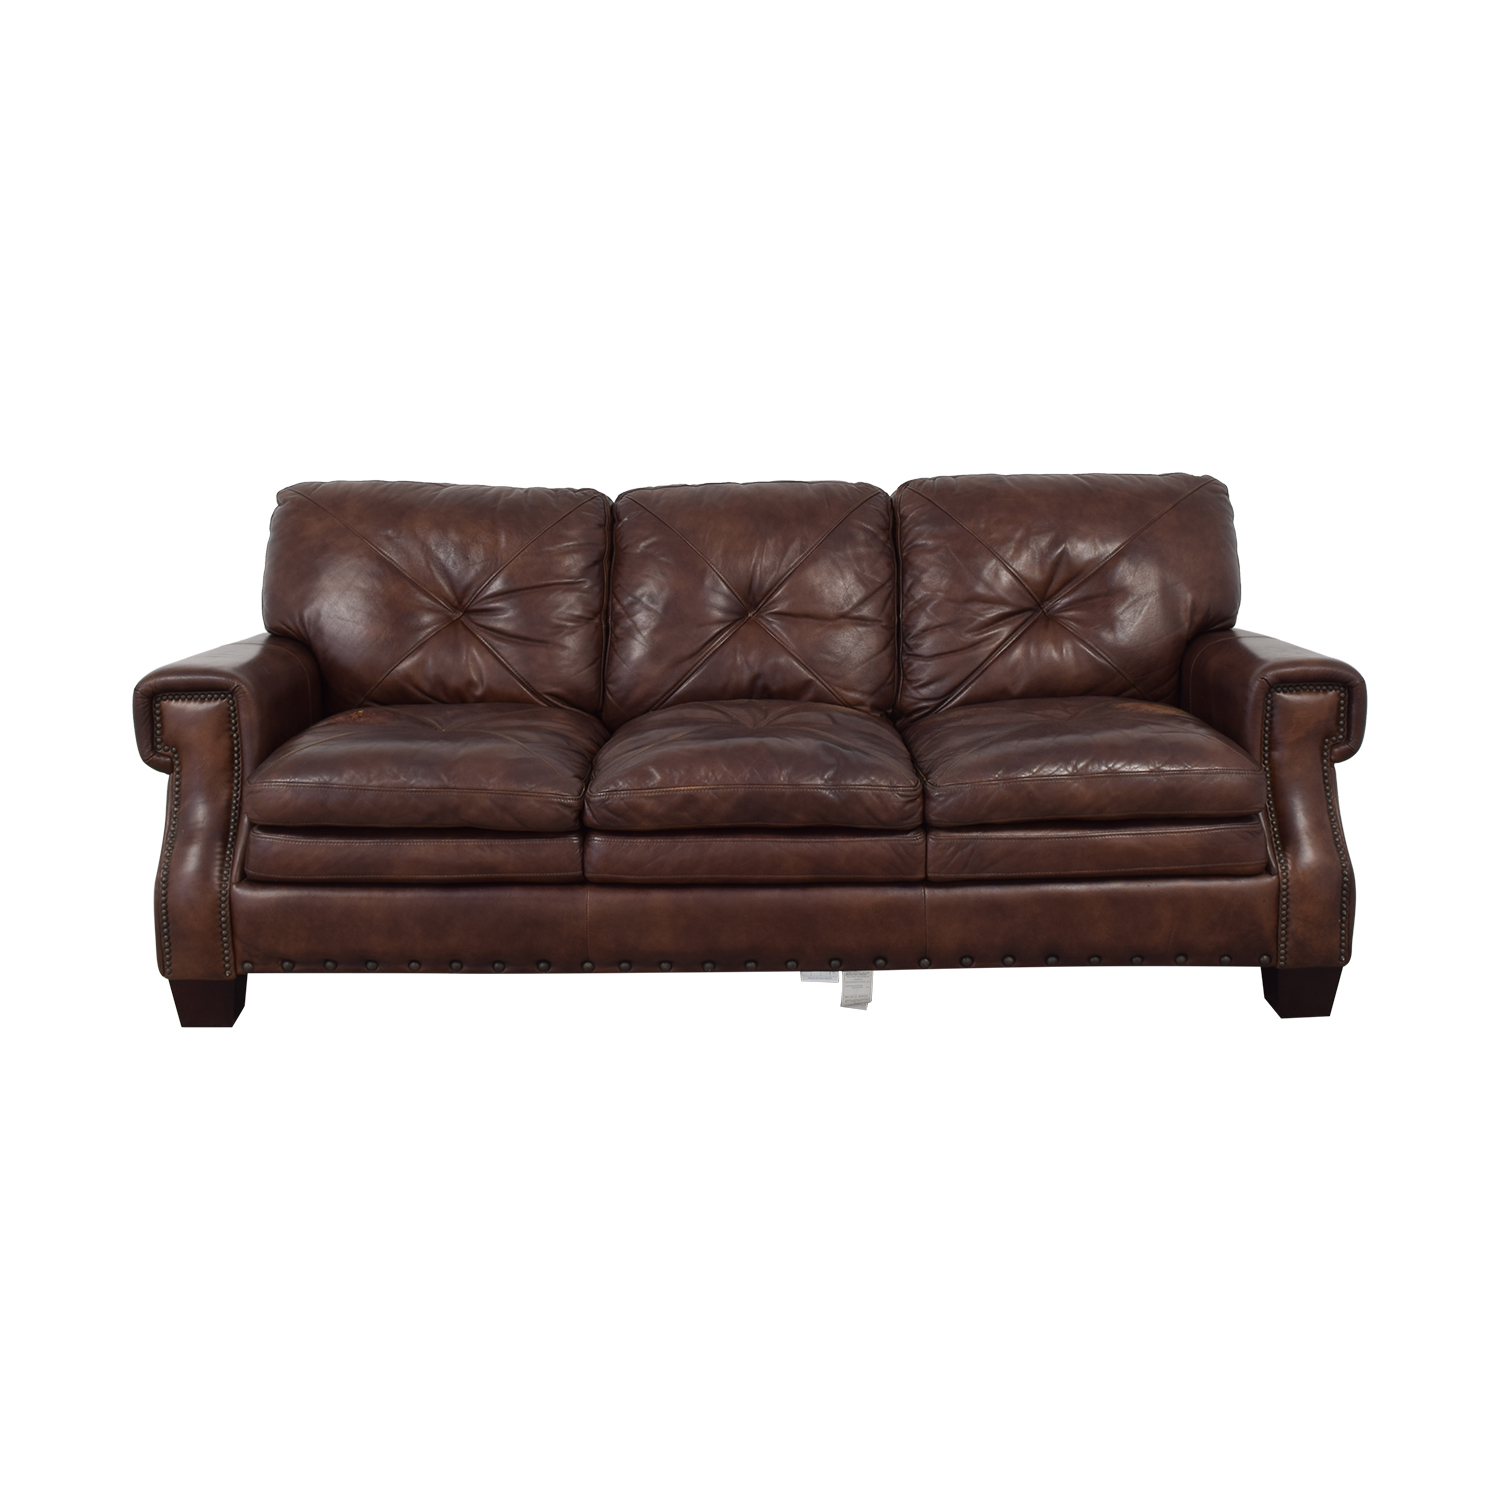 Bob's Discount Furniture Bob's Discount Furniture Kennedy Leather Sofa Maroon